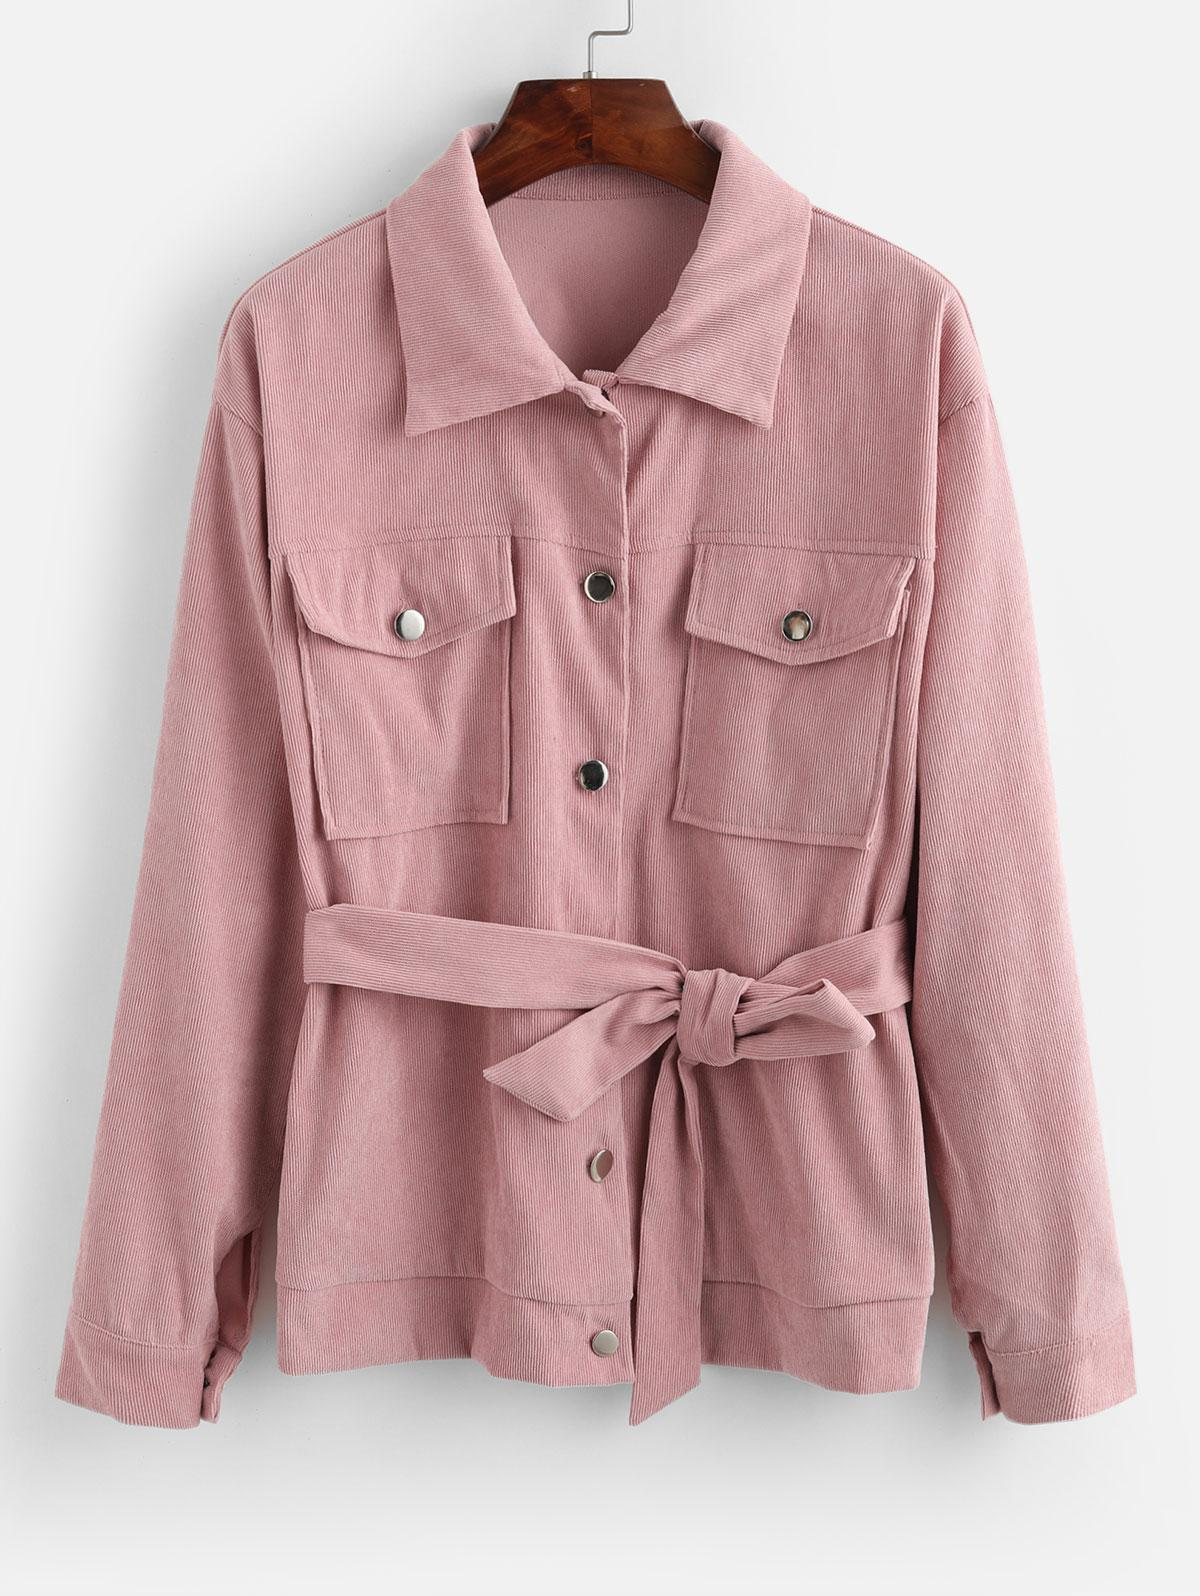 ZAFUL Button Front Flap Pockets Belted Corduroy Jacket